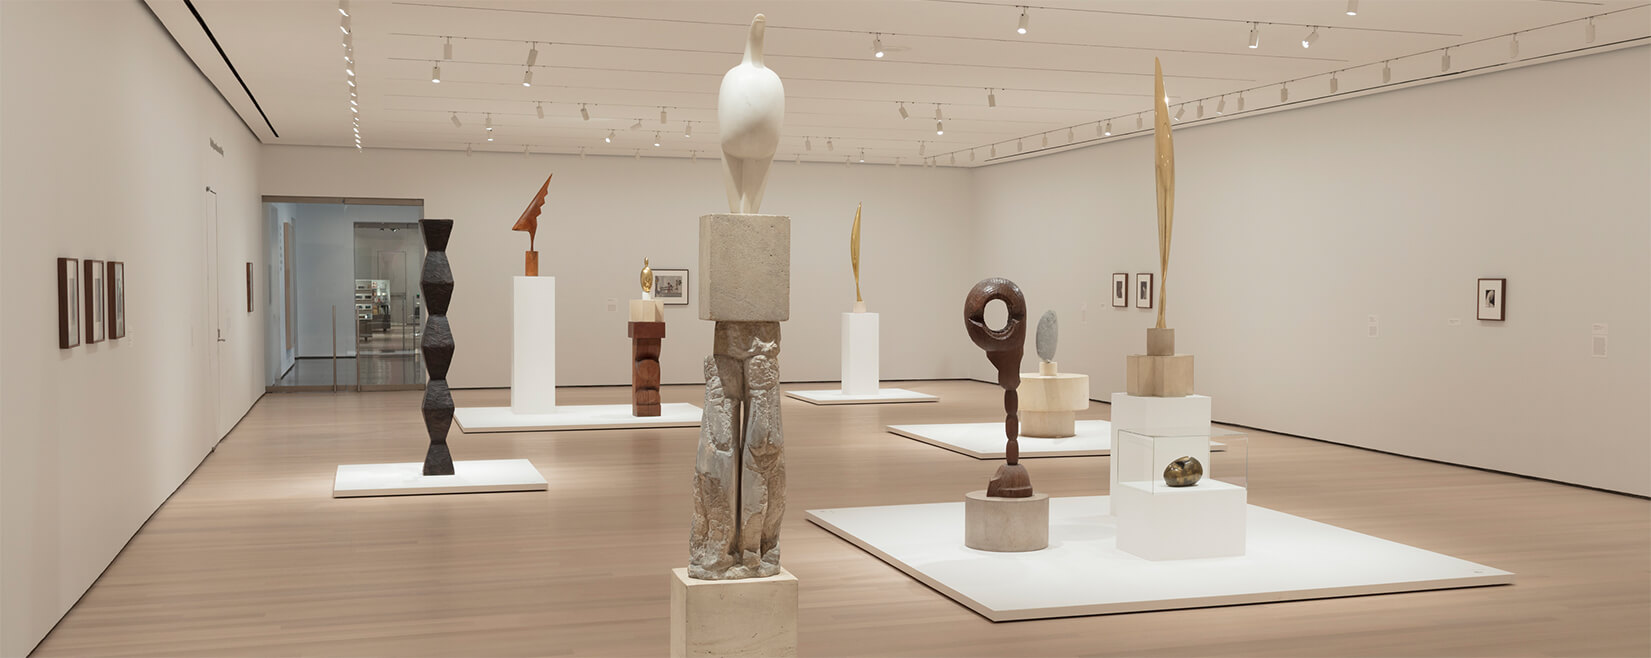 Installation view of Constantin Brancusi Sculpture